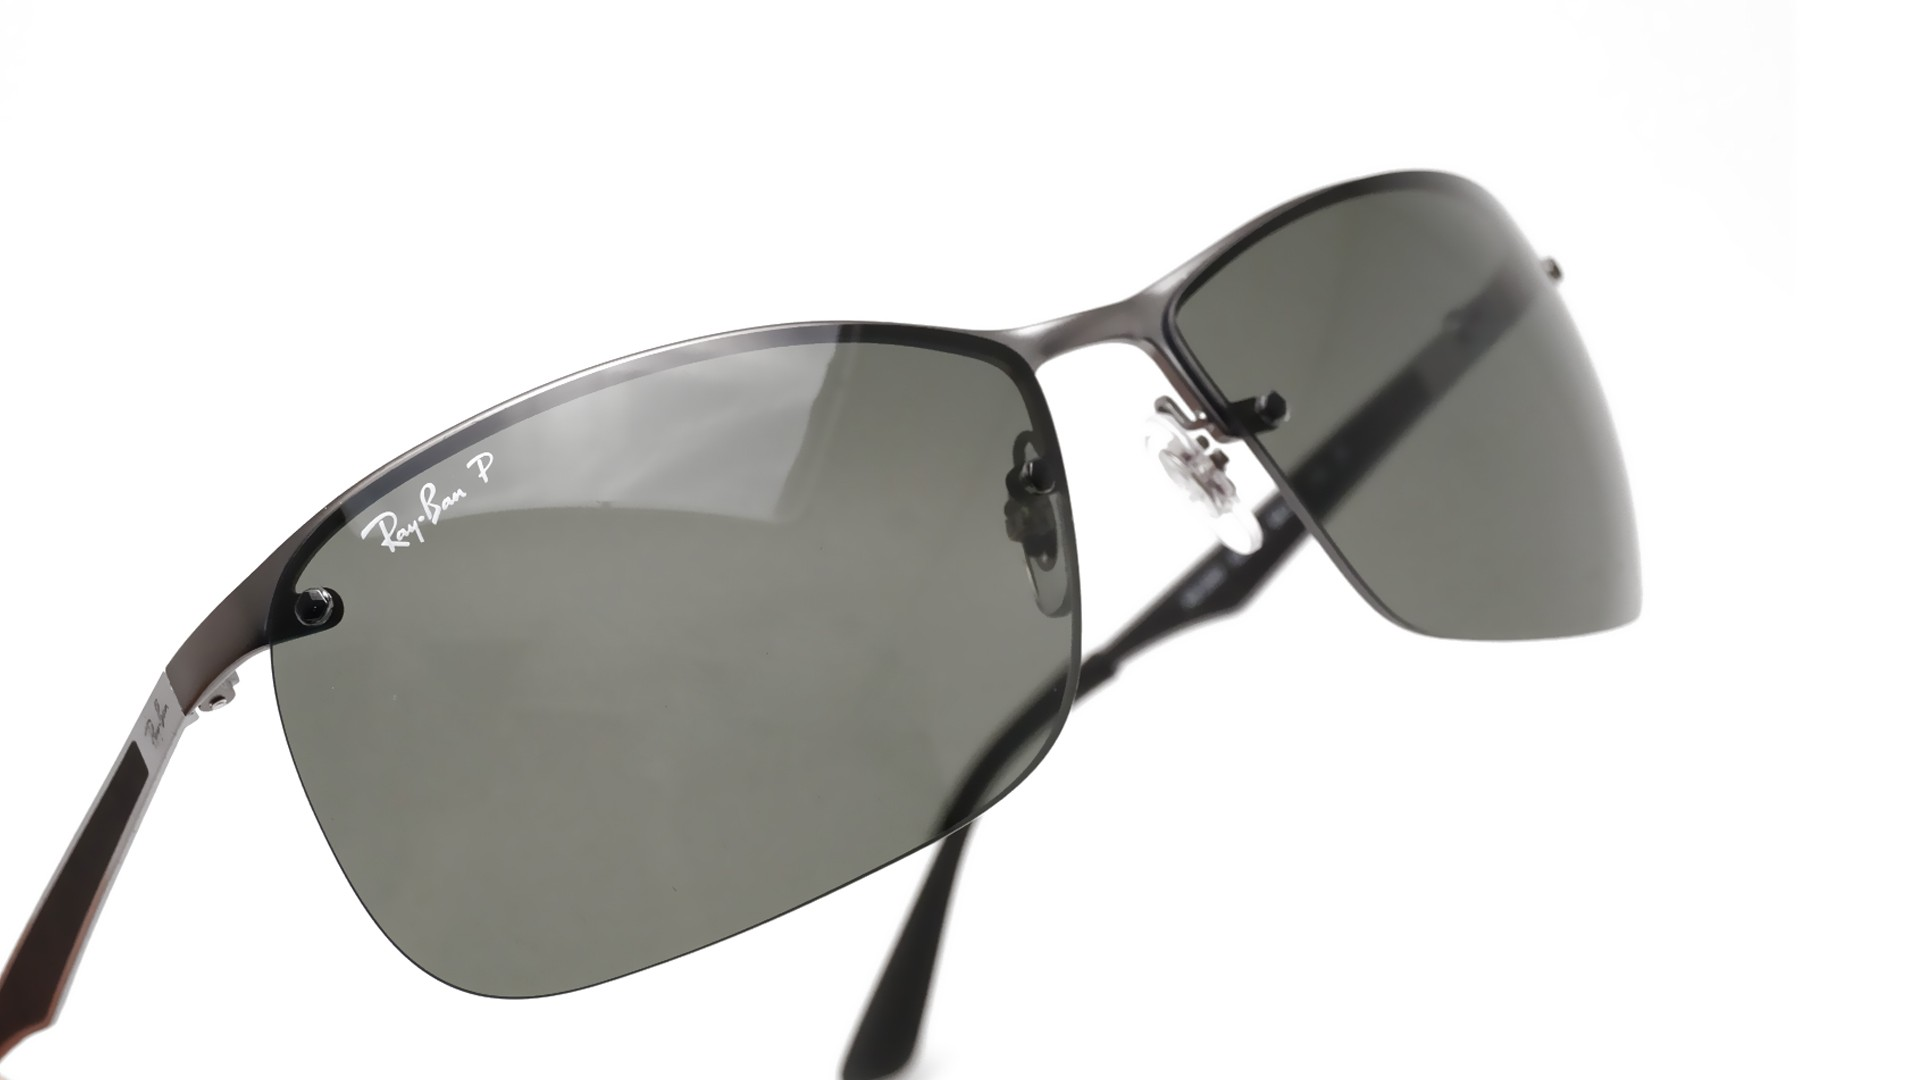 8671064c93b Sunglasses Ray-Ban RB3550 029 9A 64-15 Matte Grey Large Polarized